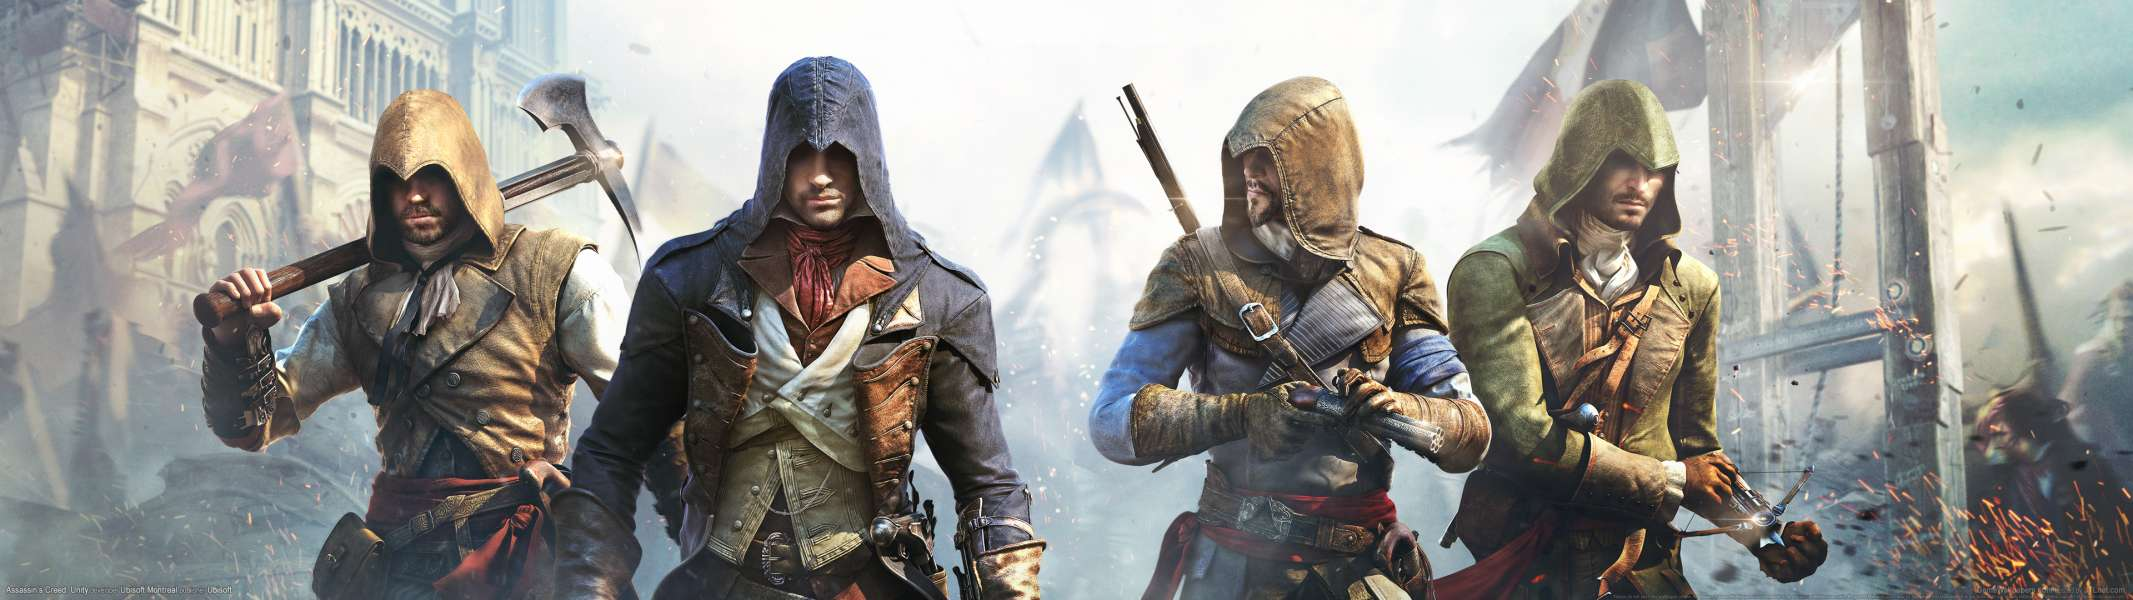 Assassin's Creed: Unity dual screen achtergrond